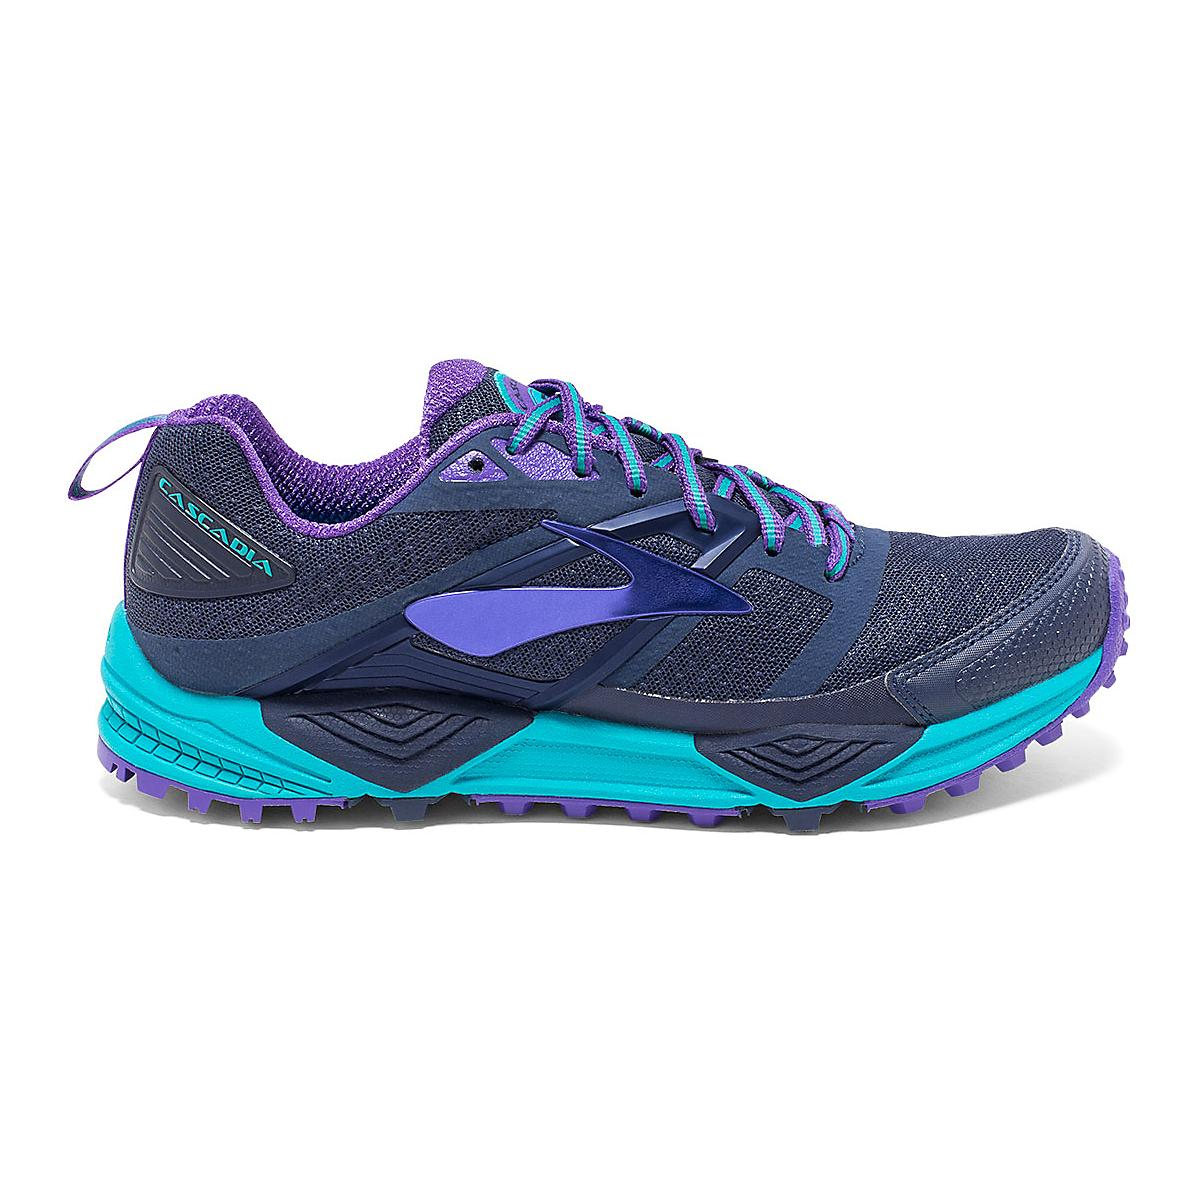 50526dce7ed4a Women s Brooks Cascadia 12 Trail Running Shoes